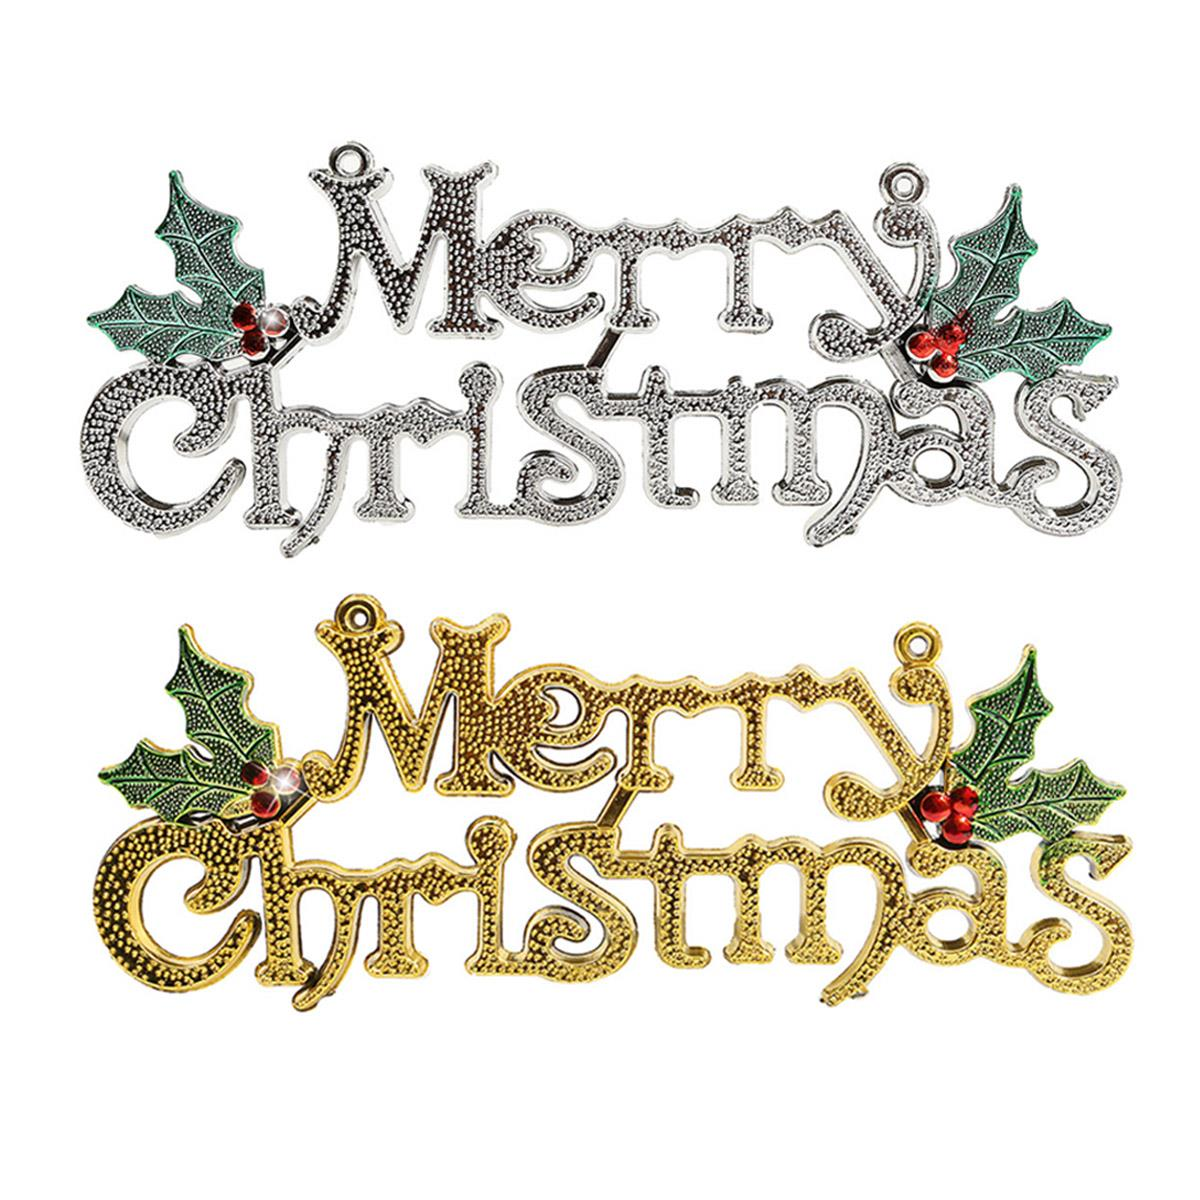 Merry Christmas Silver Gold Ornament Christmas Tree Plates Wreath Christmas  Activities Accessories Decoration Supplies(china